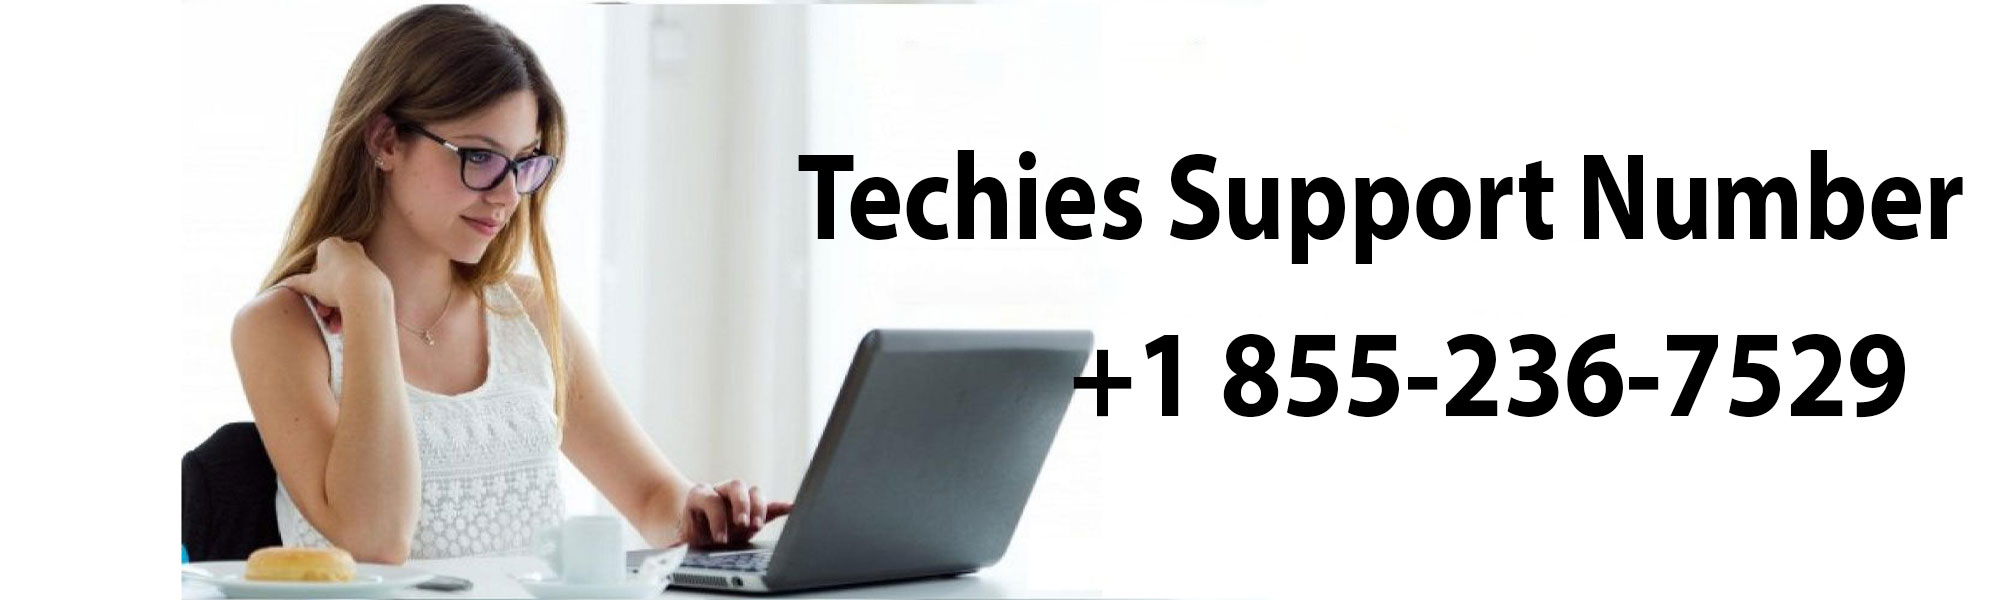 855-236-7529 Quickbooks Tech Support Phone Number | Customer Support